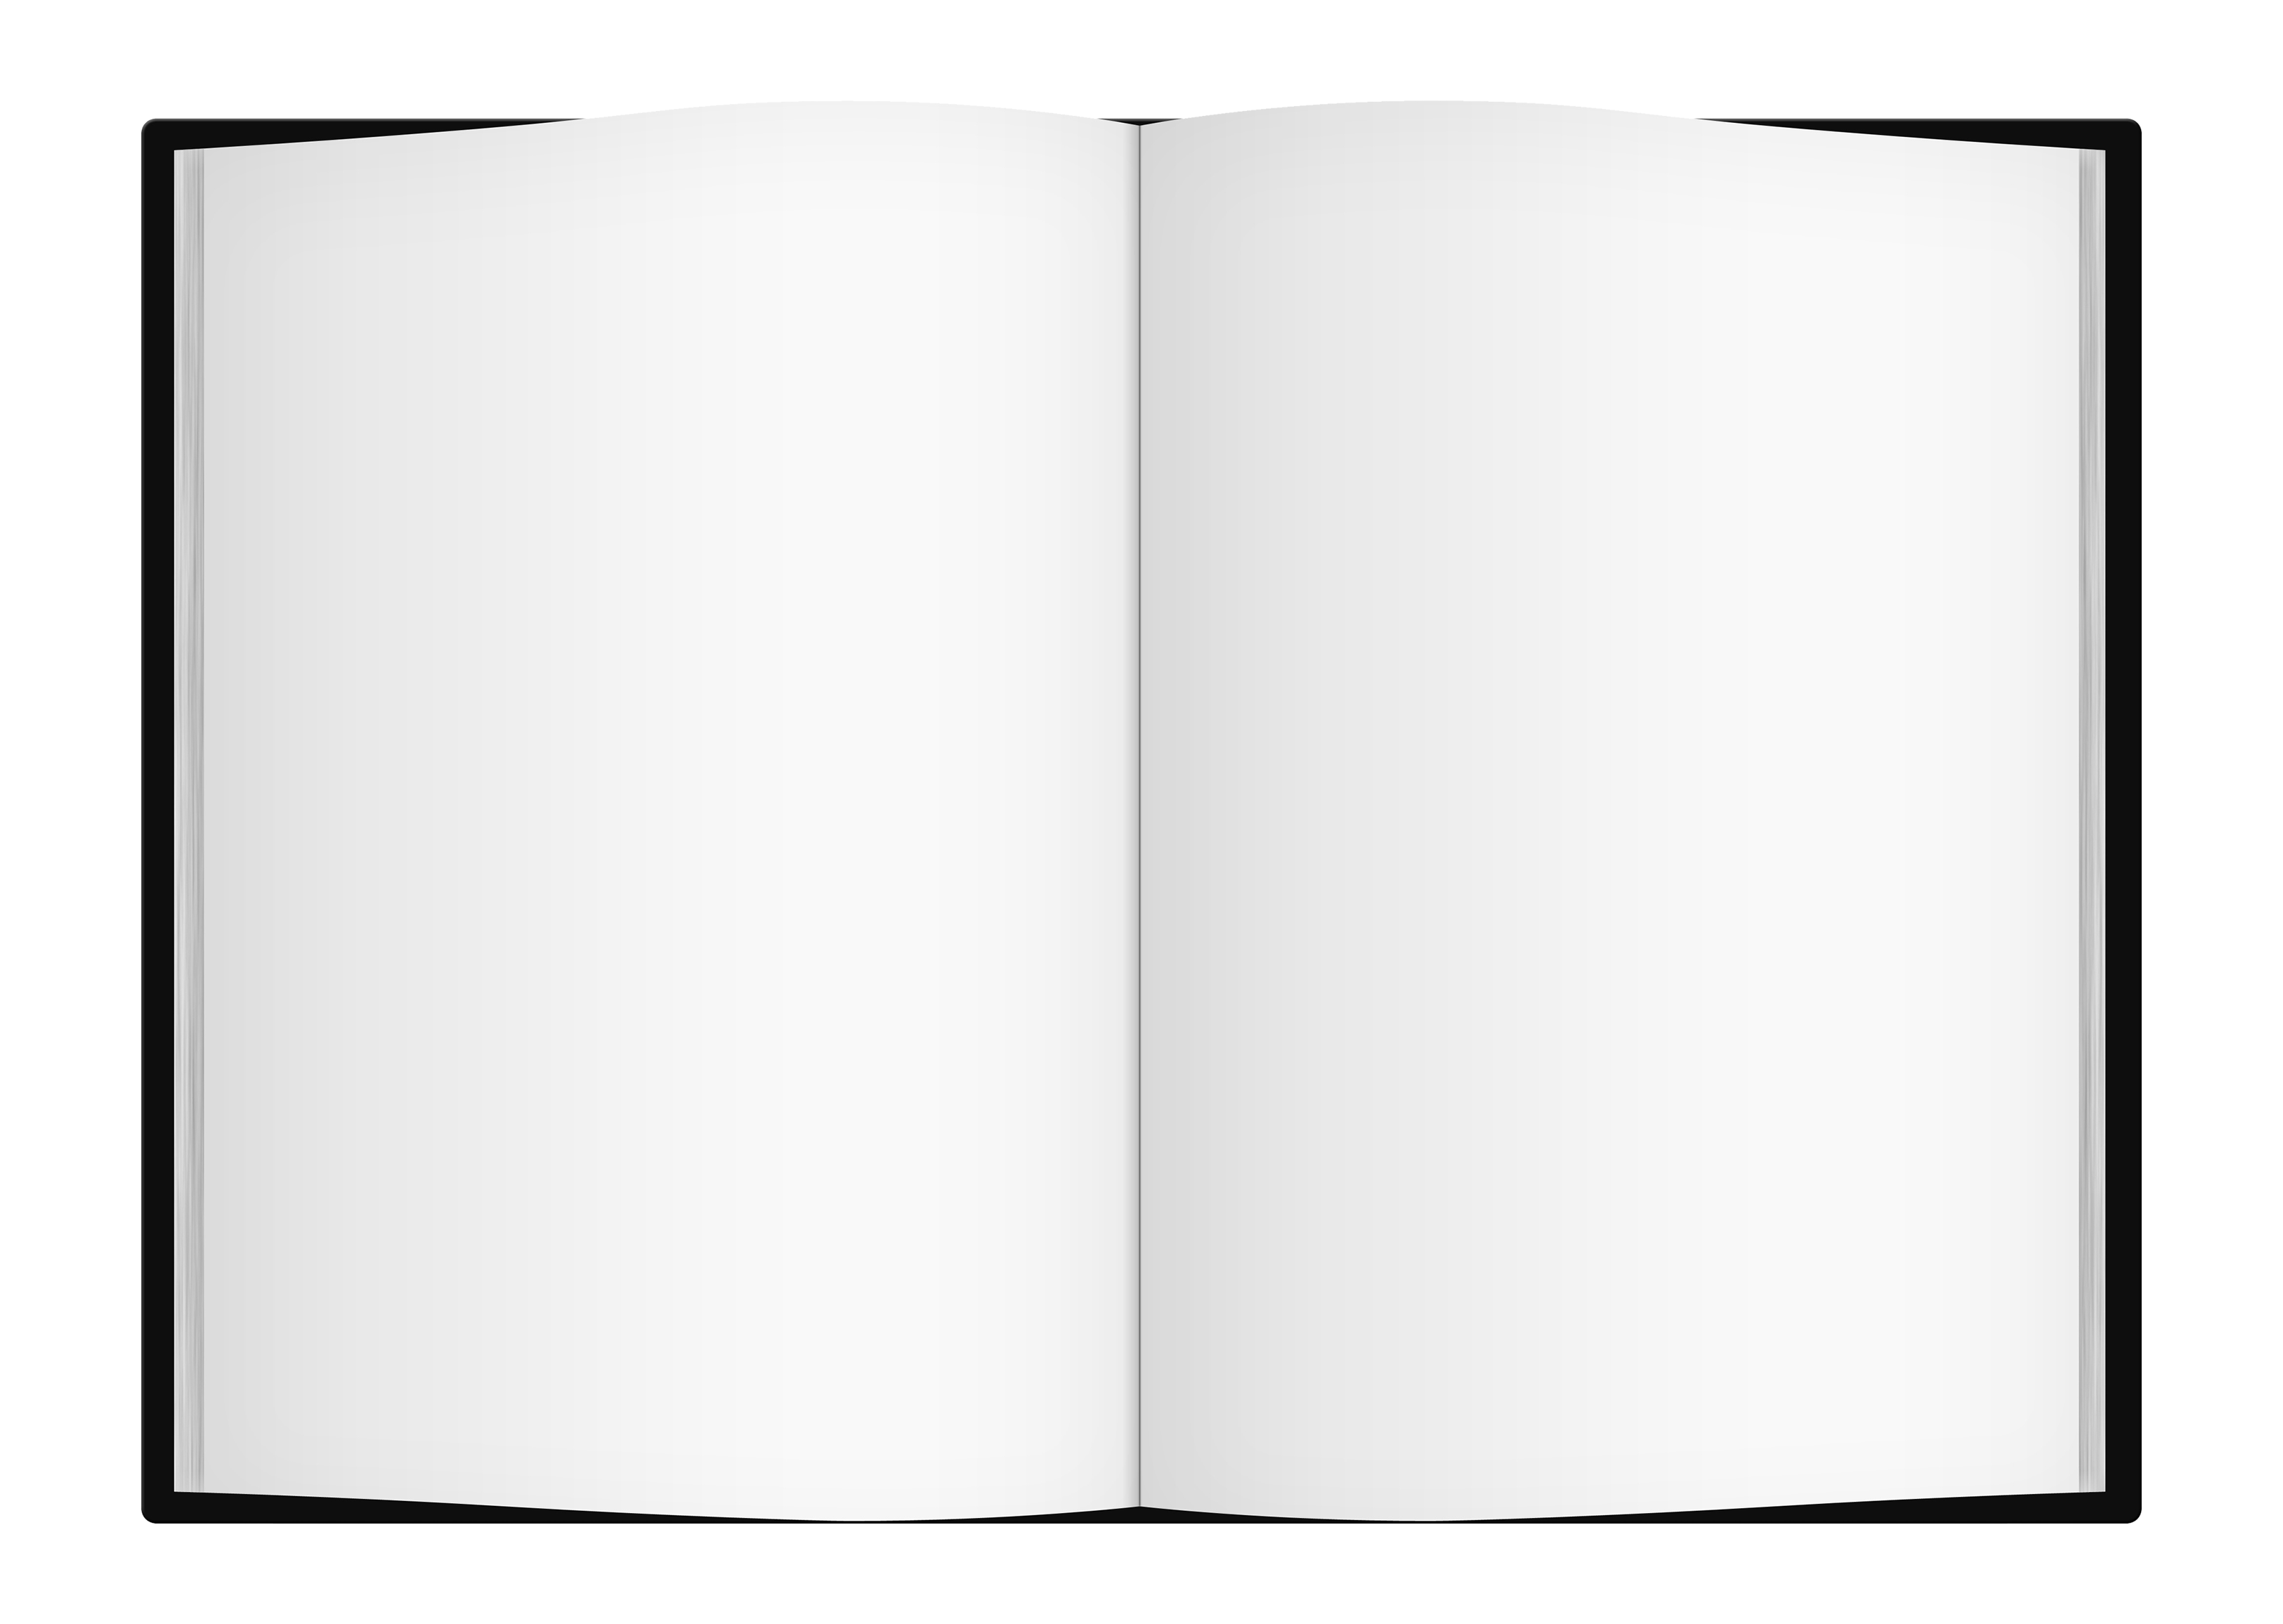 Book Cover Design Template Png : Open book png image